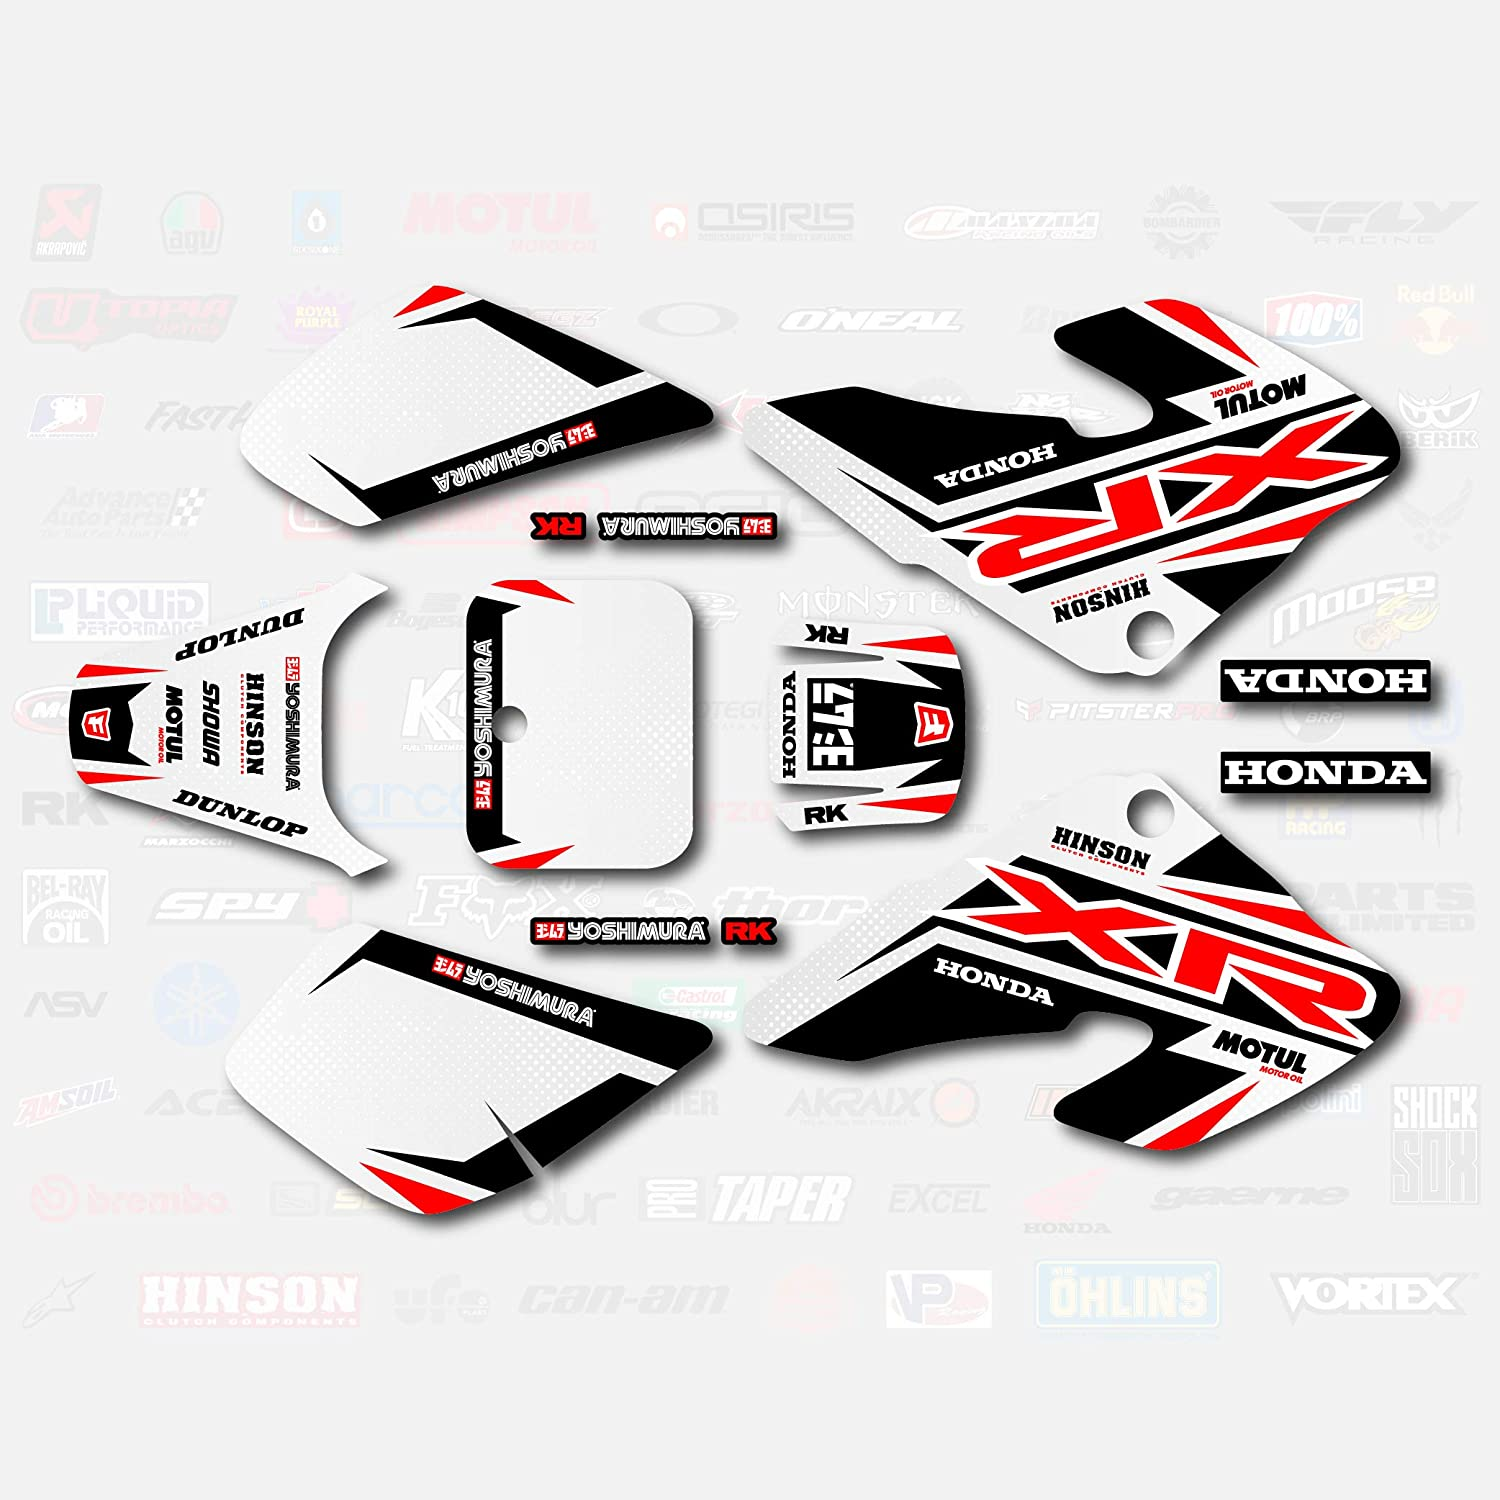 Red Shift Graphics Kit Fits 00-03 Honda Xr50 Shroud Decals Xr 50 pitbike